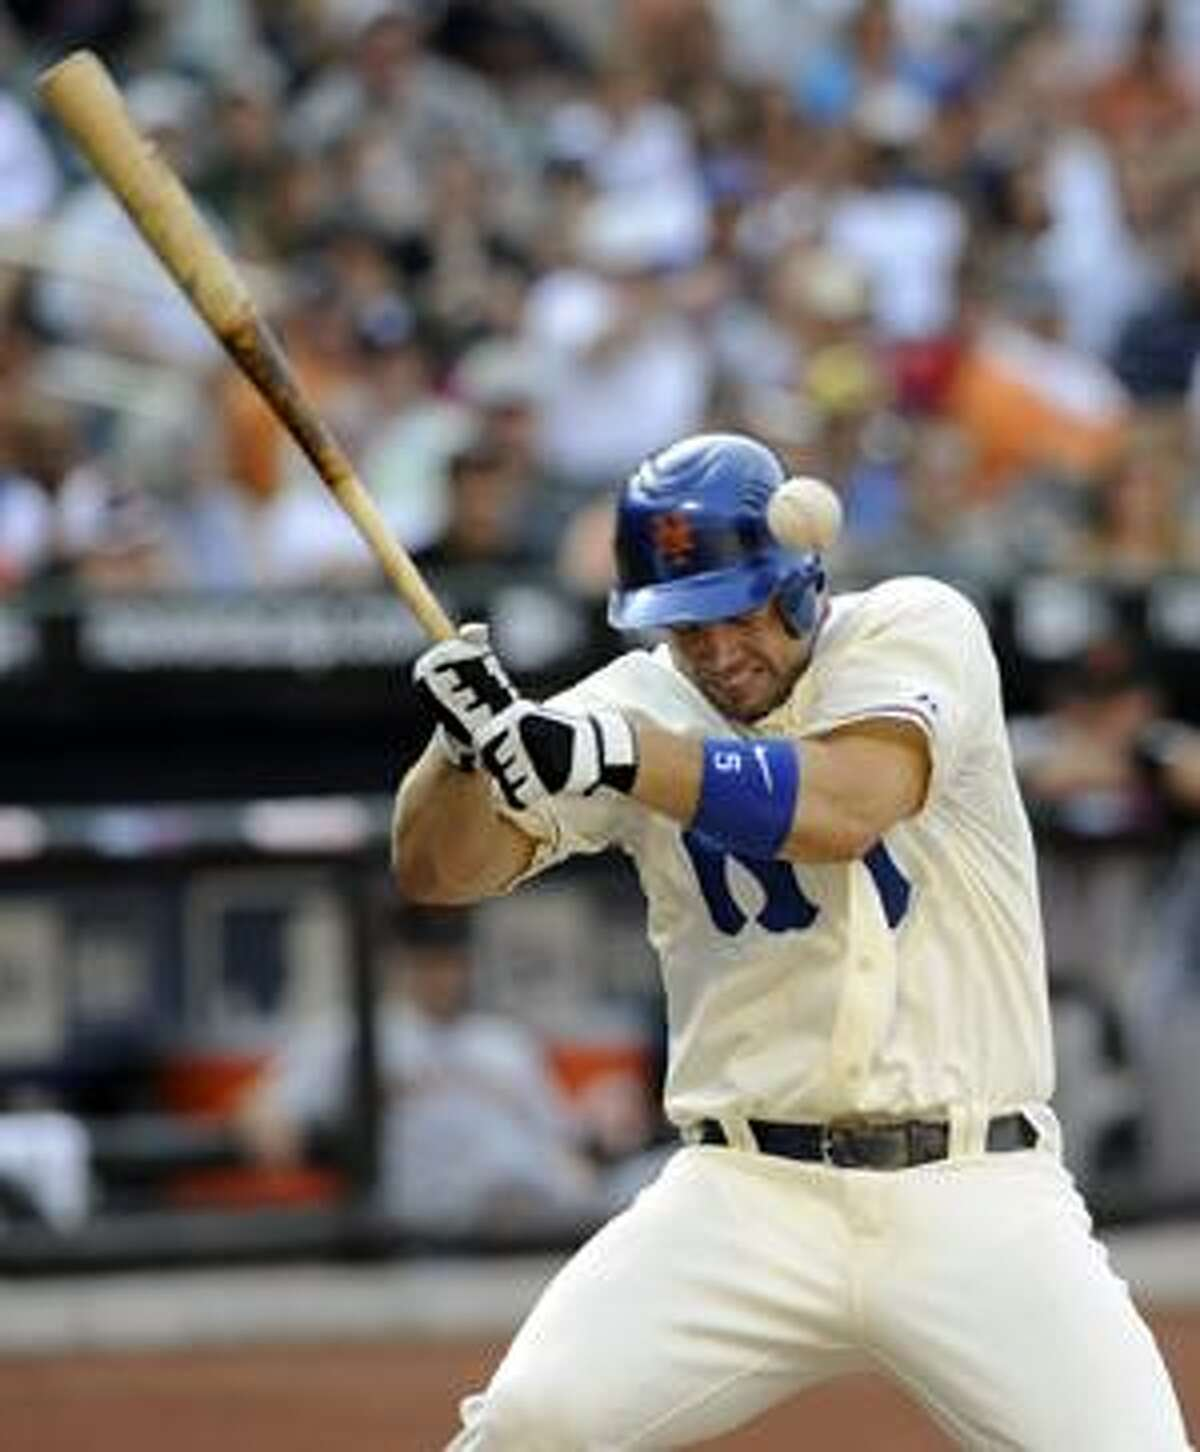 New York Mets' David Wright is hit with a pitch during the fourth inning of a game against the San Francisco Giants, Saturday in New York. (AP Photo/Newsday, David Pokress)